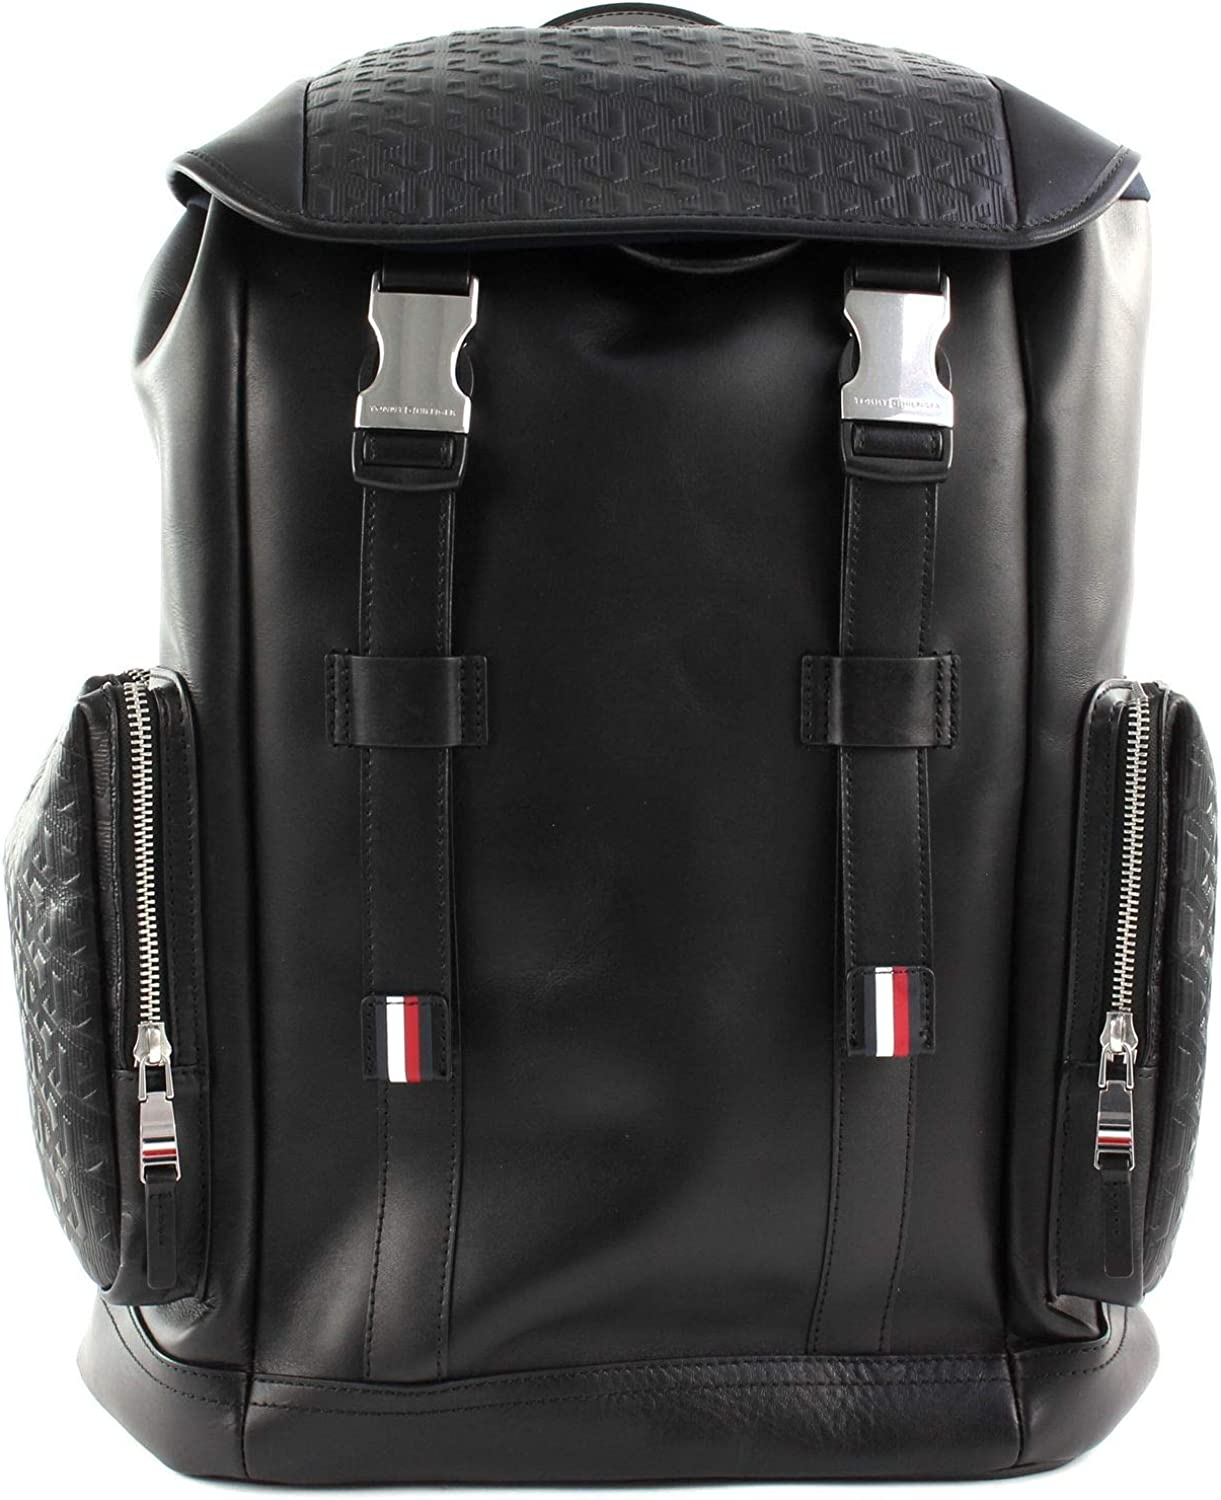 Tommy Hilfiger CASUAL LEATHER EMBOSS FLAP BACKPHombreMonederosNegro (Black) 17x47x42 centimeters (B x H x T)